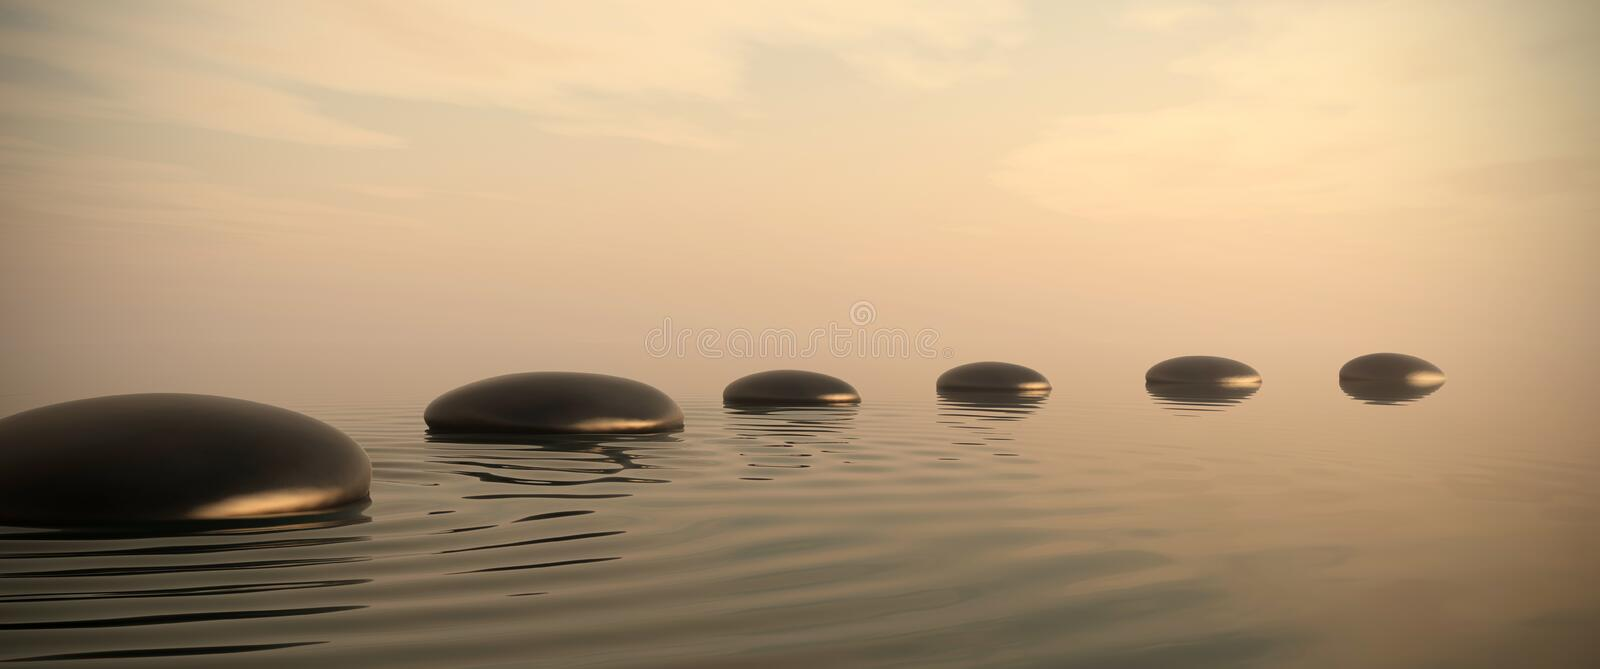 Zen path of stones on sunrise in widescreen stock illustration